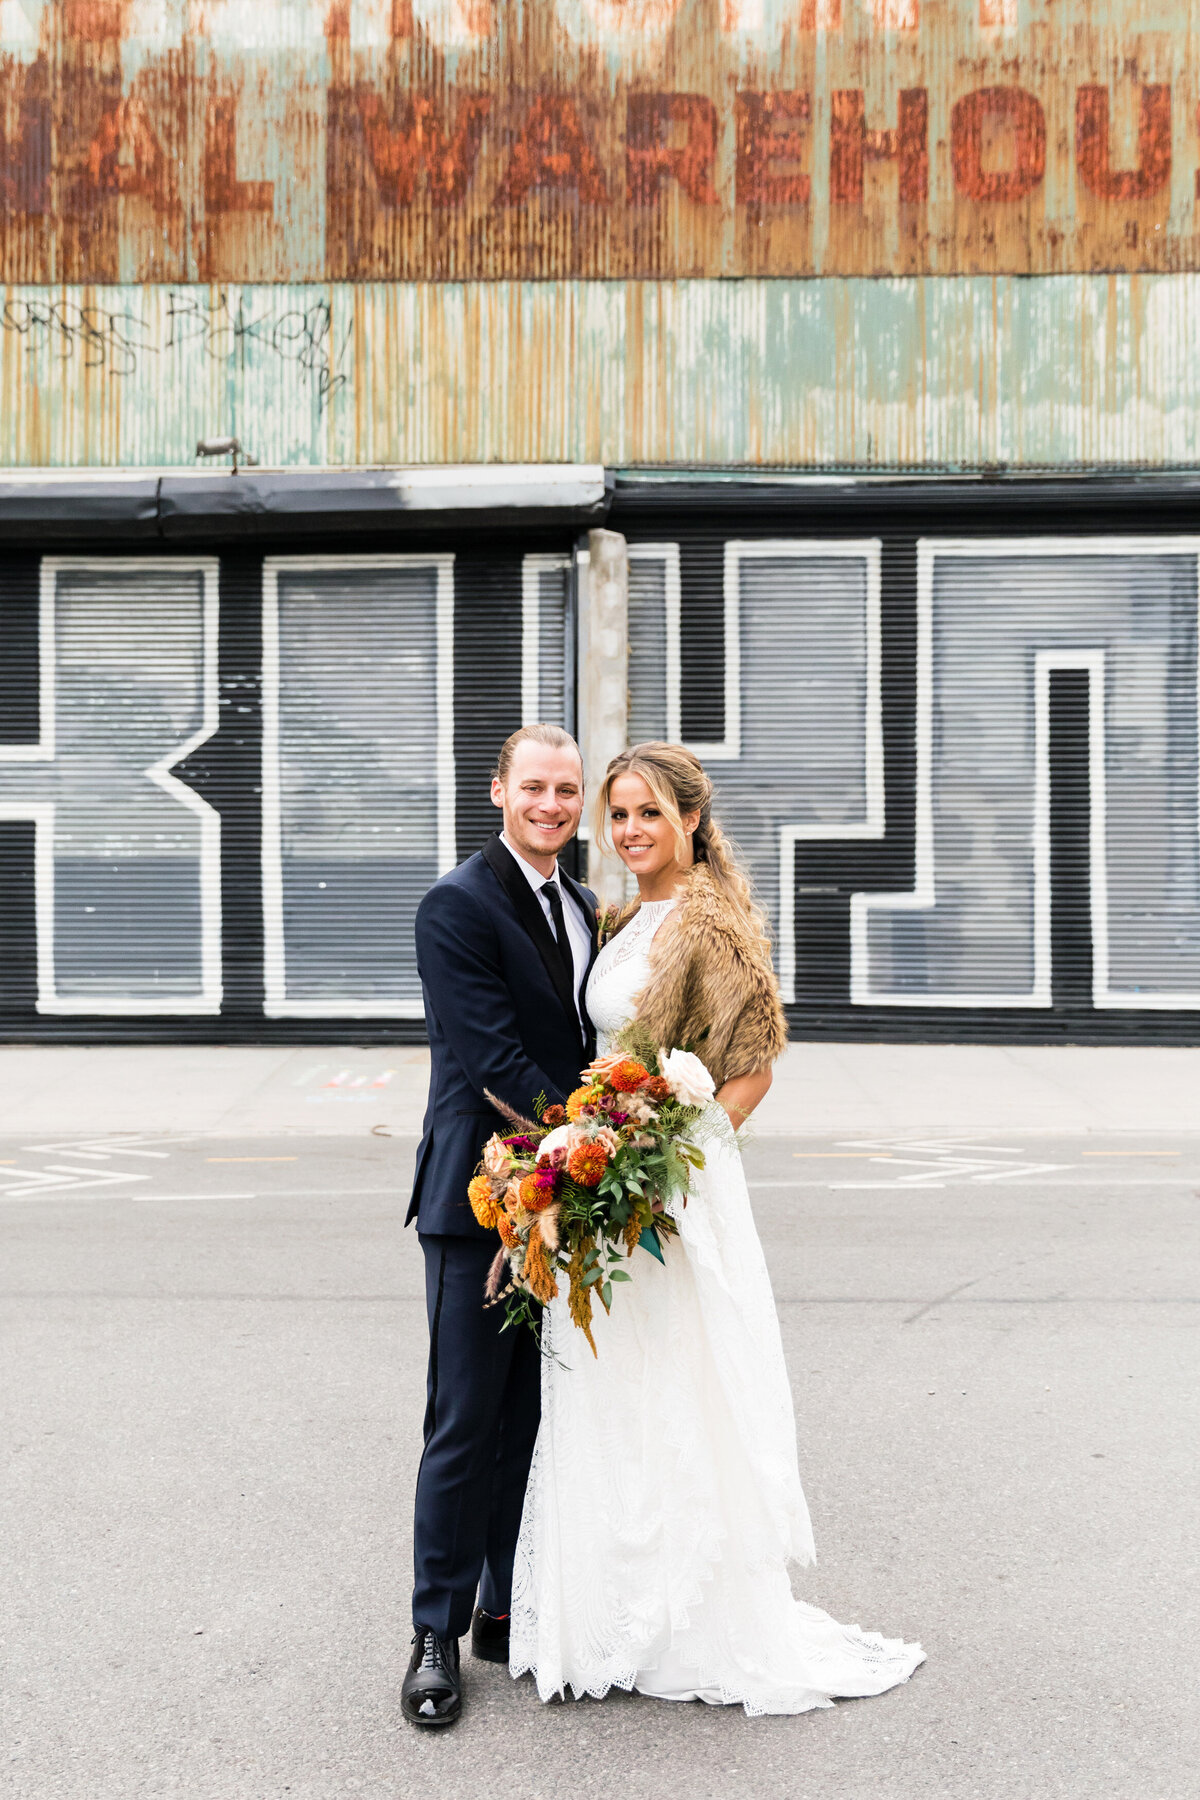 Greenpoint_Loft_0522_Kacie_Corey_Wedding_04306